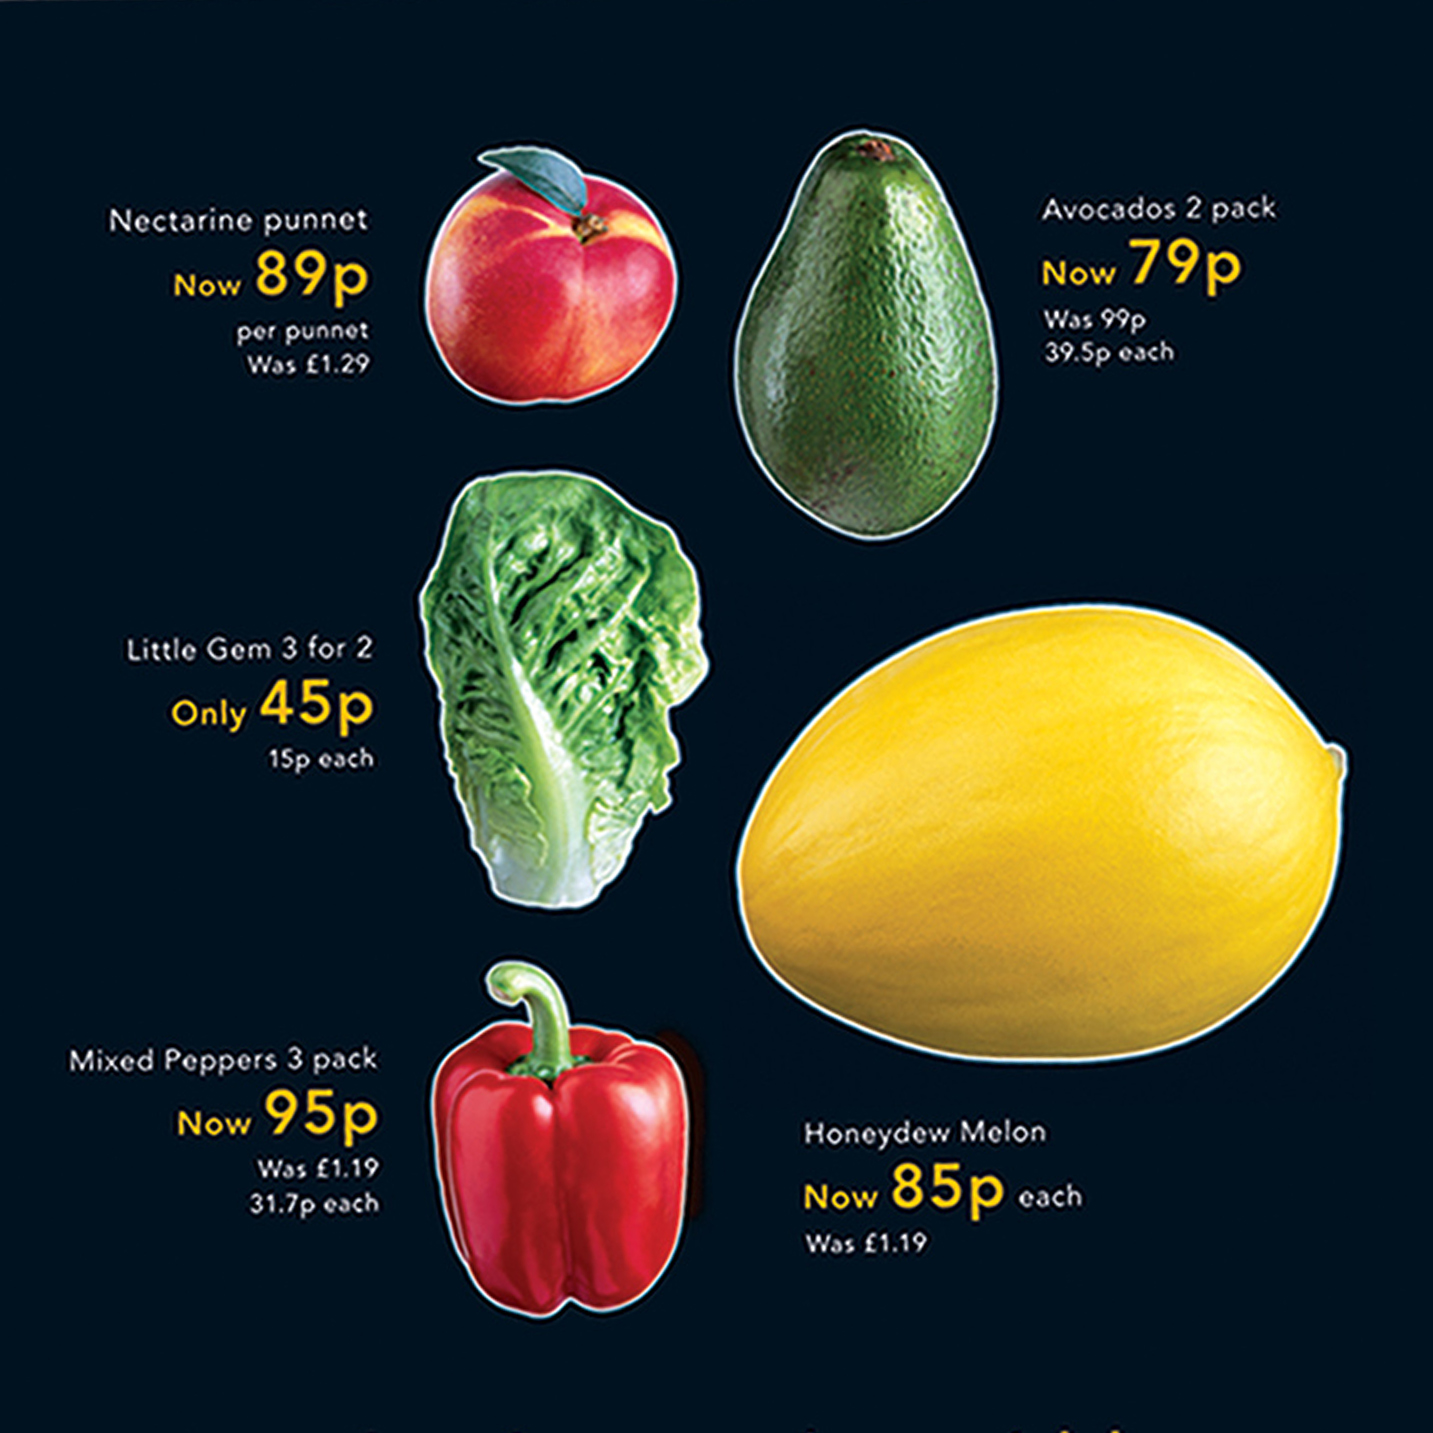 HOME PAGE - TEMPLATE-Recovered_0019_02.Port - Aldi.jpg